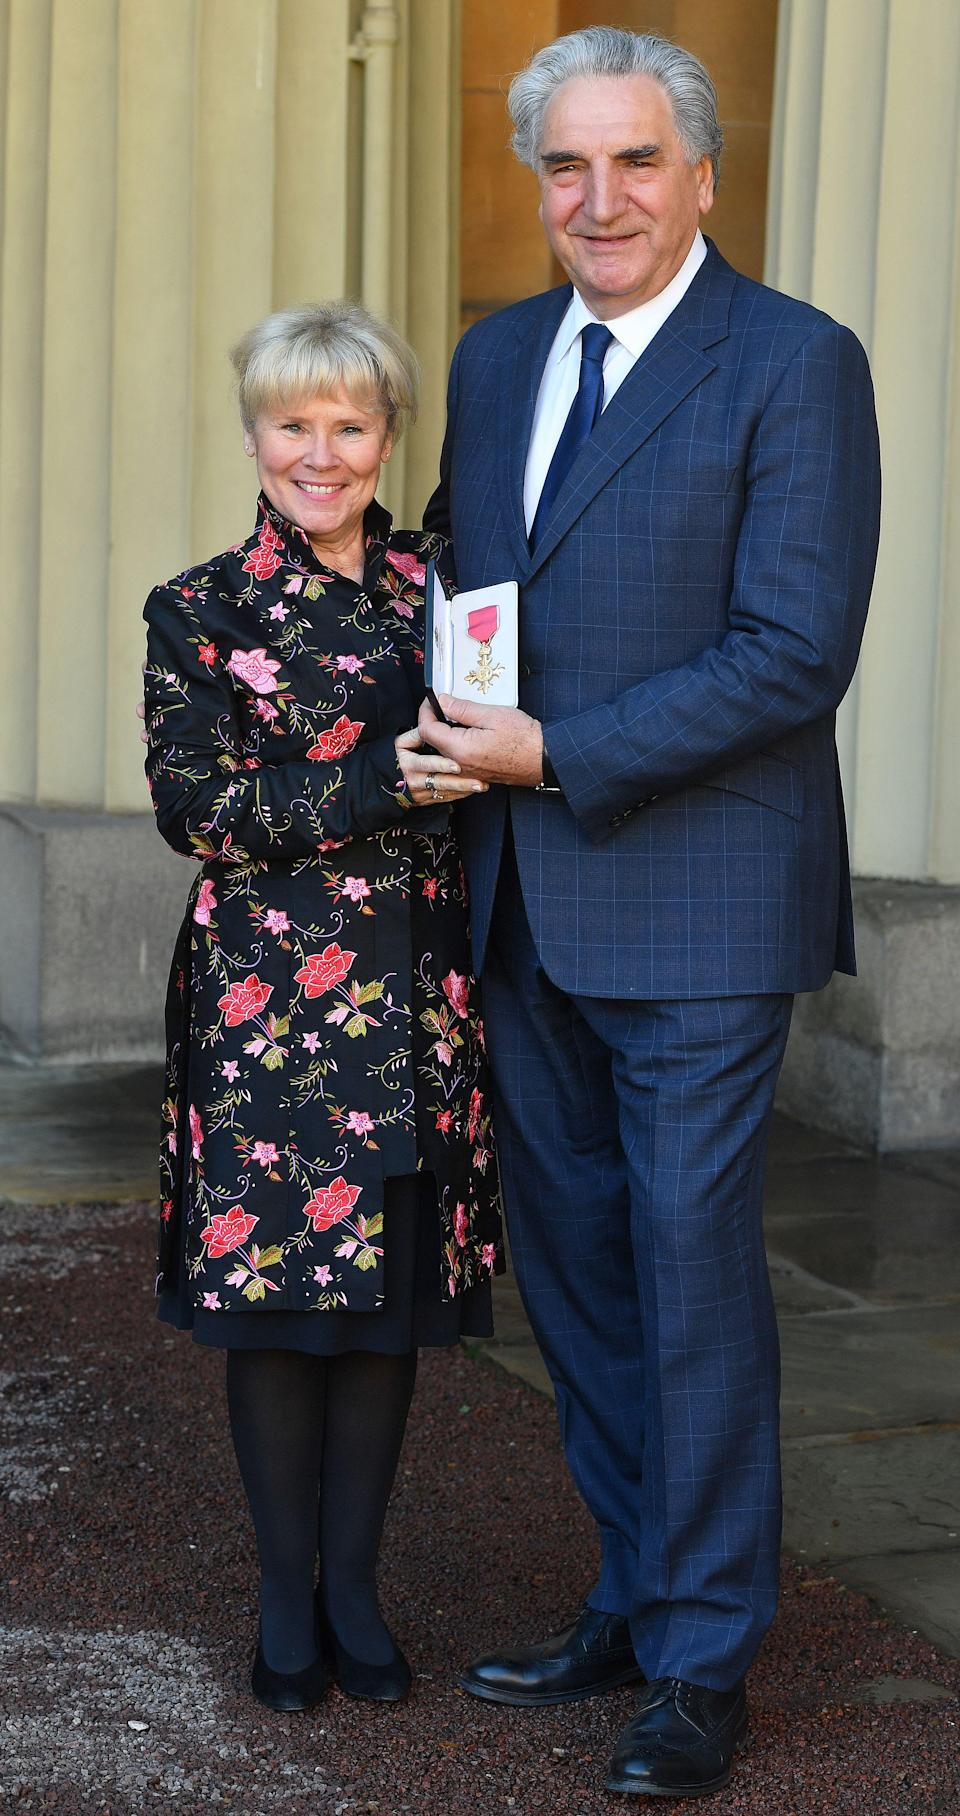 British actor Jim Carter (R) poses with his wife Imelda Staunton (L) after being appointed Officer of the Order of the British Empire (OBE) at an investiture ceremony at Buckingham Palace in London on March 14, 2019, for his services to drama. (Photo by John Stillwell / POOL / AFP) (Photo credit should read JOHN STILLWELL/AFP/Getty Images)